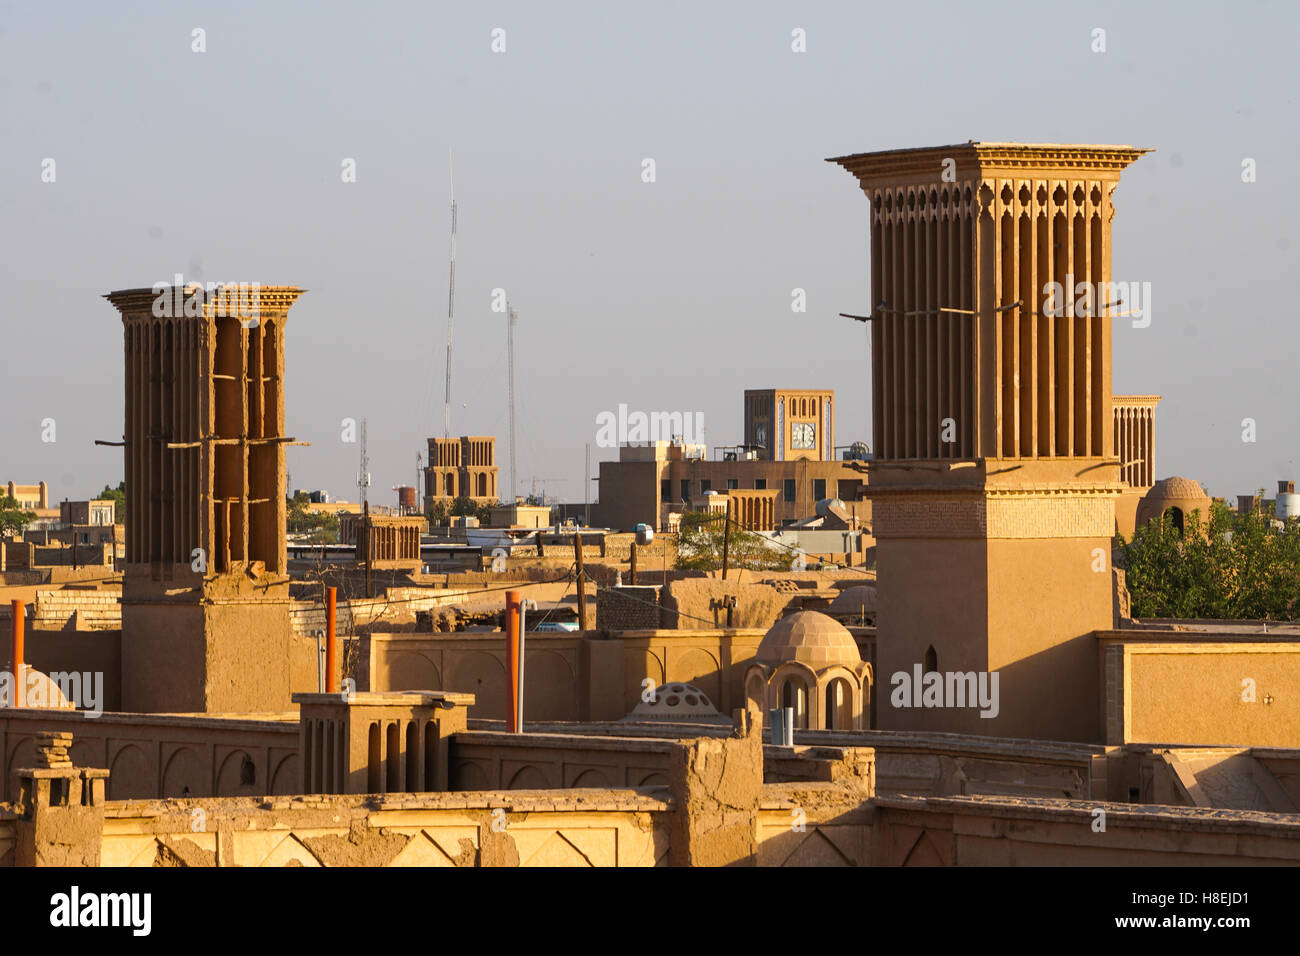 Cityscape at dusk with many windtowers (badgirs), Yazd, Iran, Middle East - Stock Image